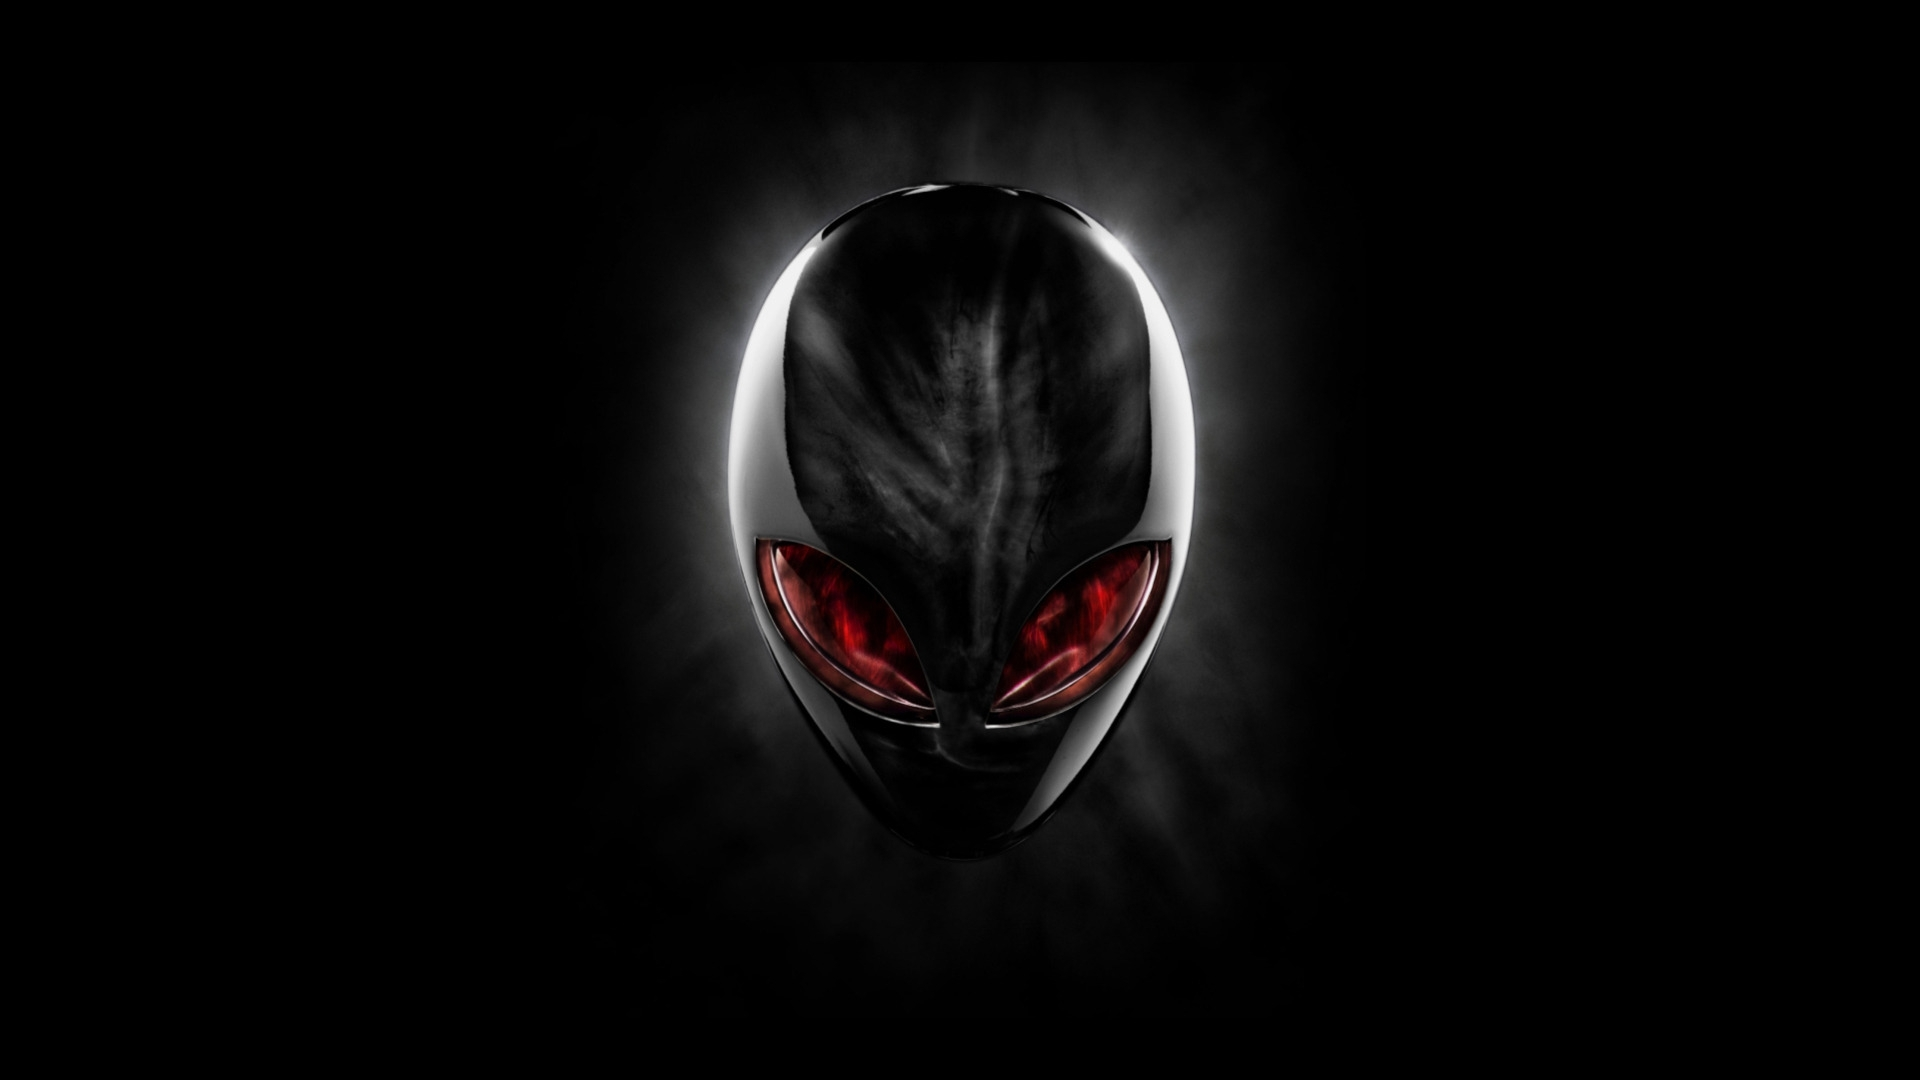 1920x1080 Alienware Skull Laptop Full Hd 1080p Hd 4k Wallpapers